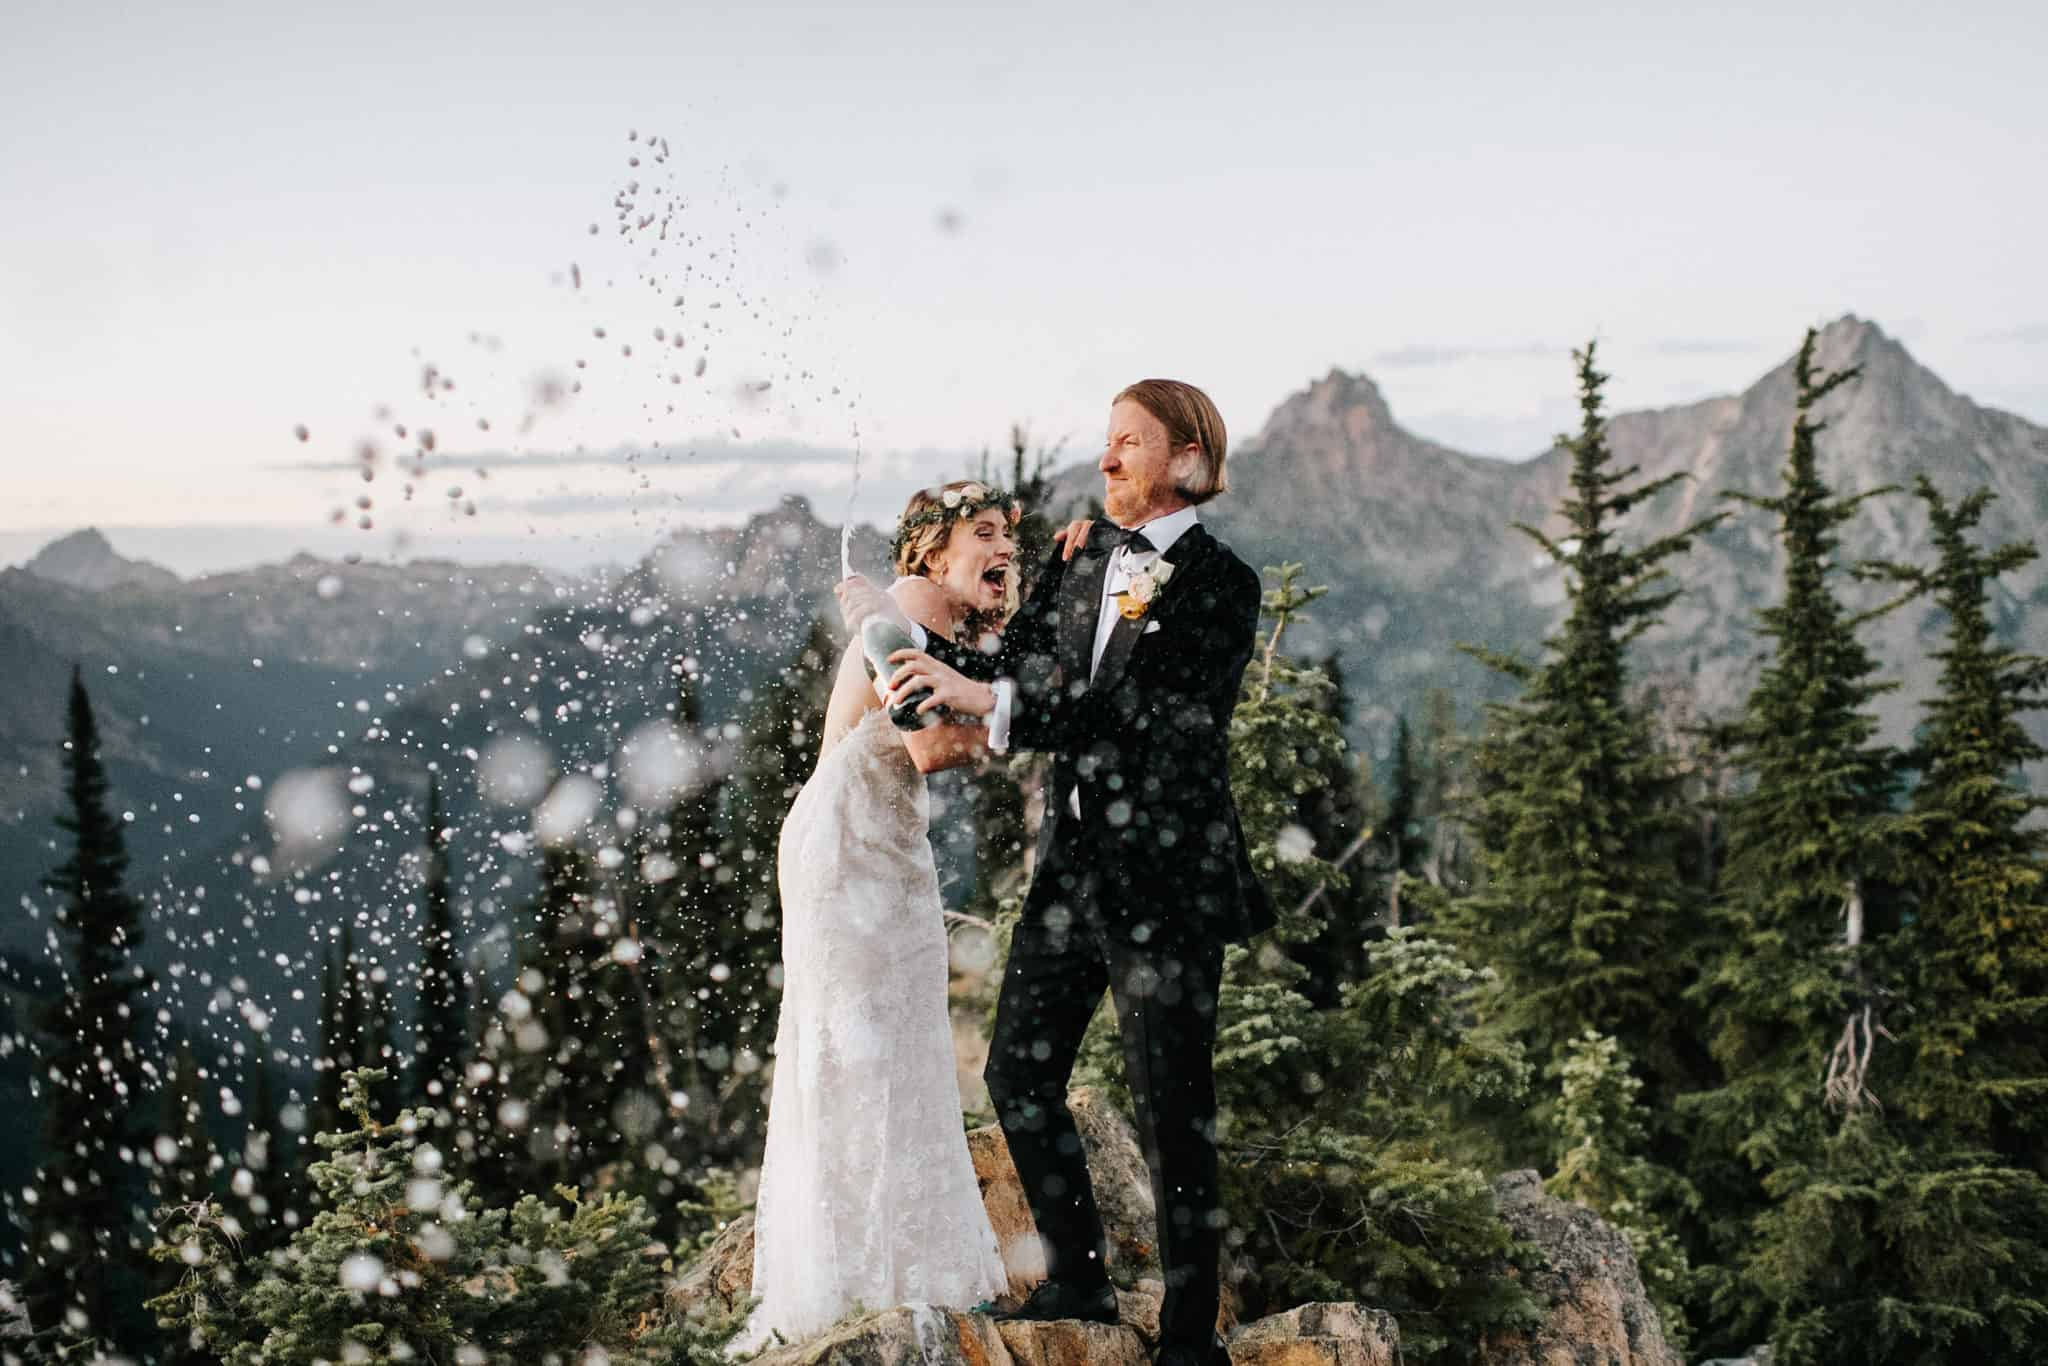 Zion National Park Elopement Photographer